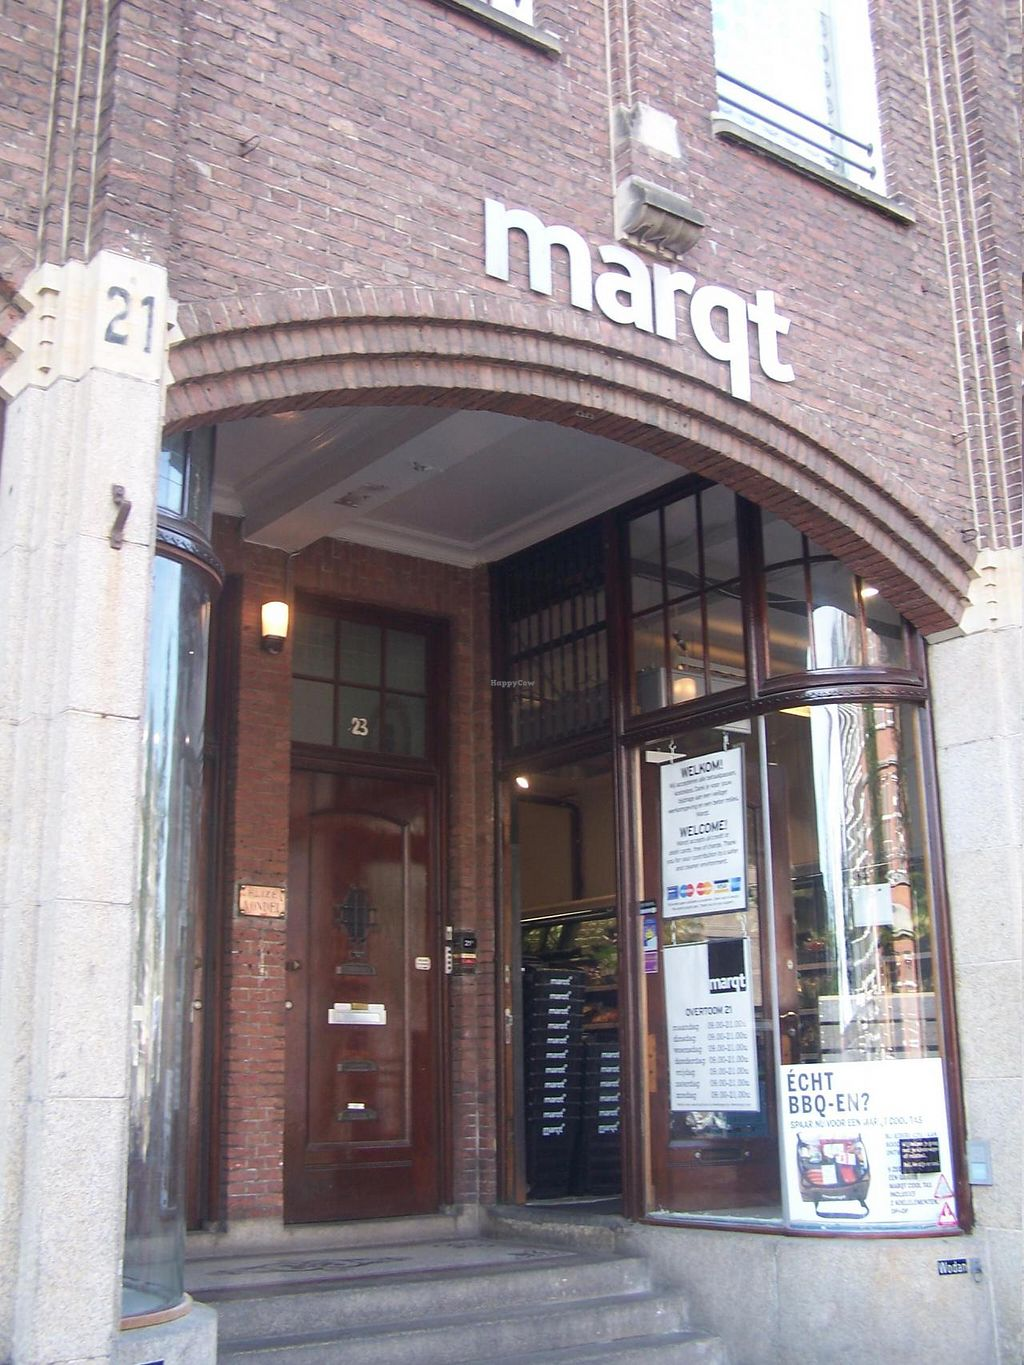 """Photo of Marqt - Overtoom  by <a href=""""/members/profile/Amy1274"""">Amy1274</a> <br/>Marqt Overtoom <br/> July 19, 2014  - <a href='/contact/abuse/image/23359/74470'>Report</a>"""